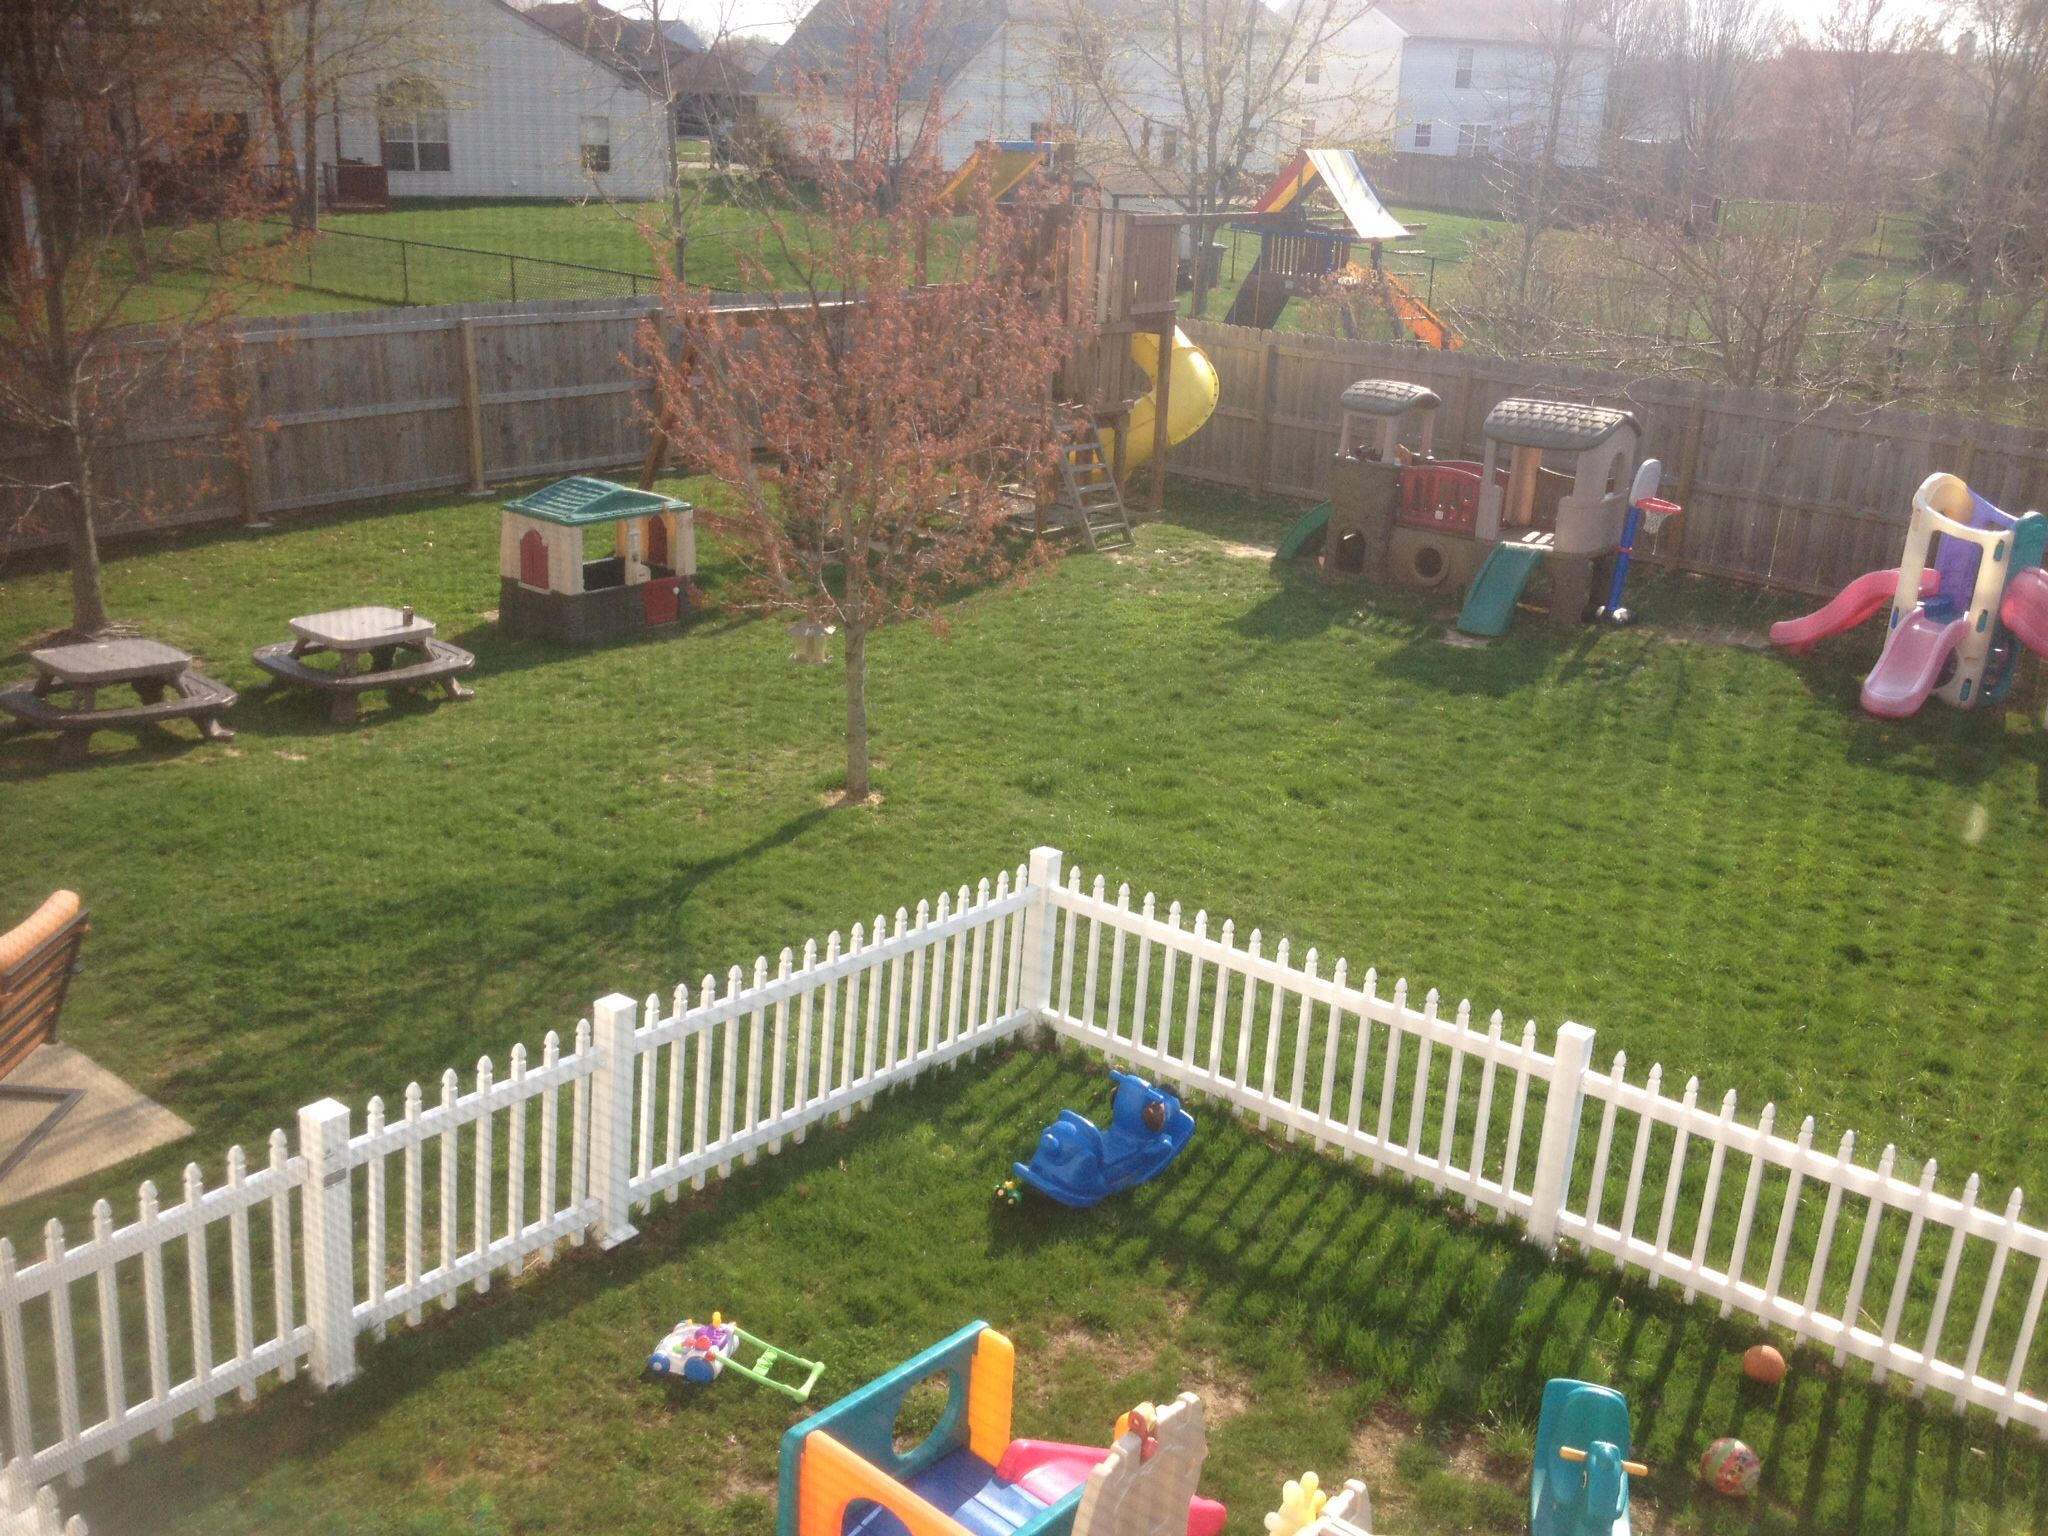 Outdoors play areas...white fence keeps toddlers in